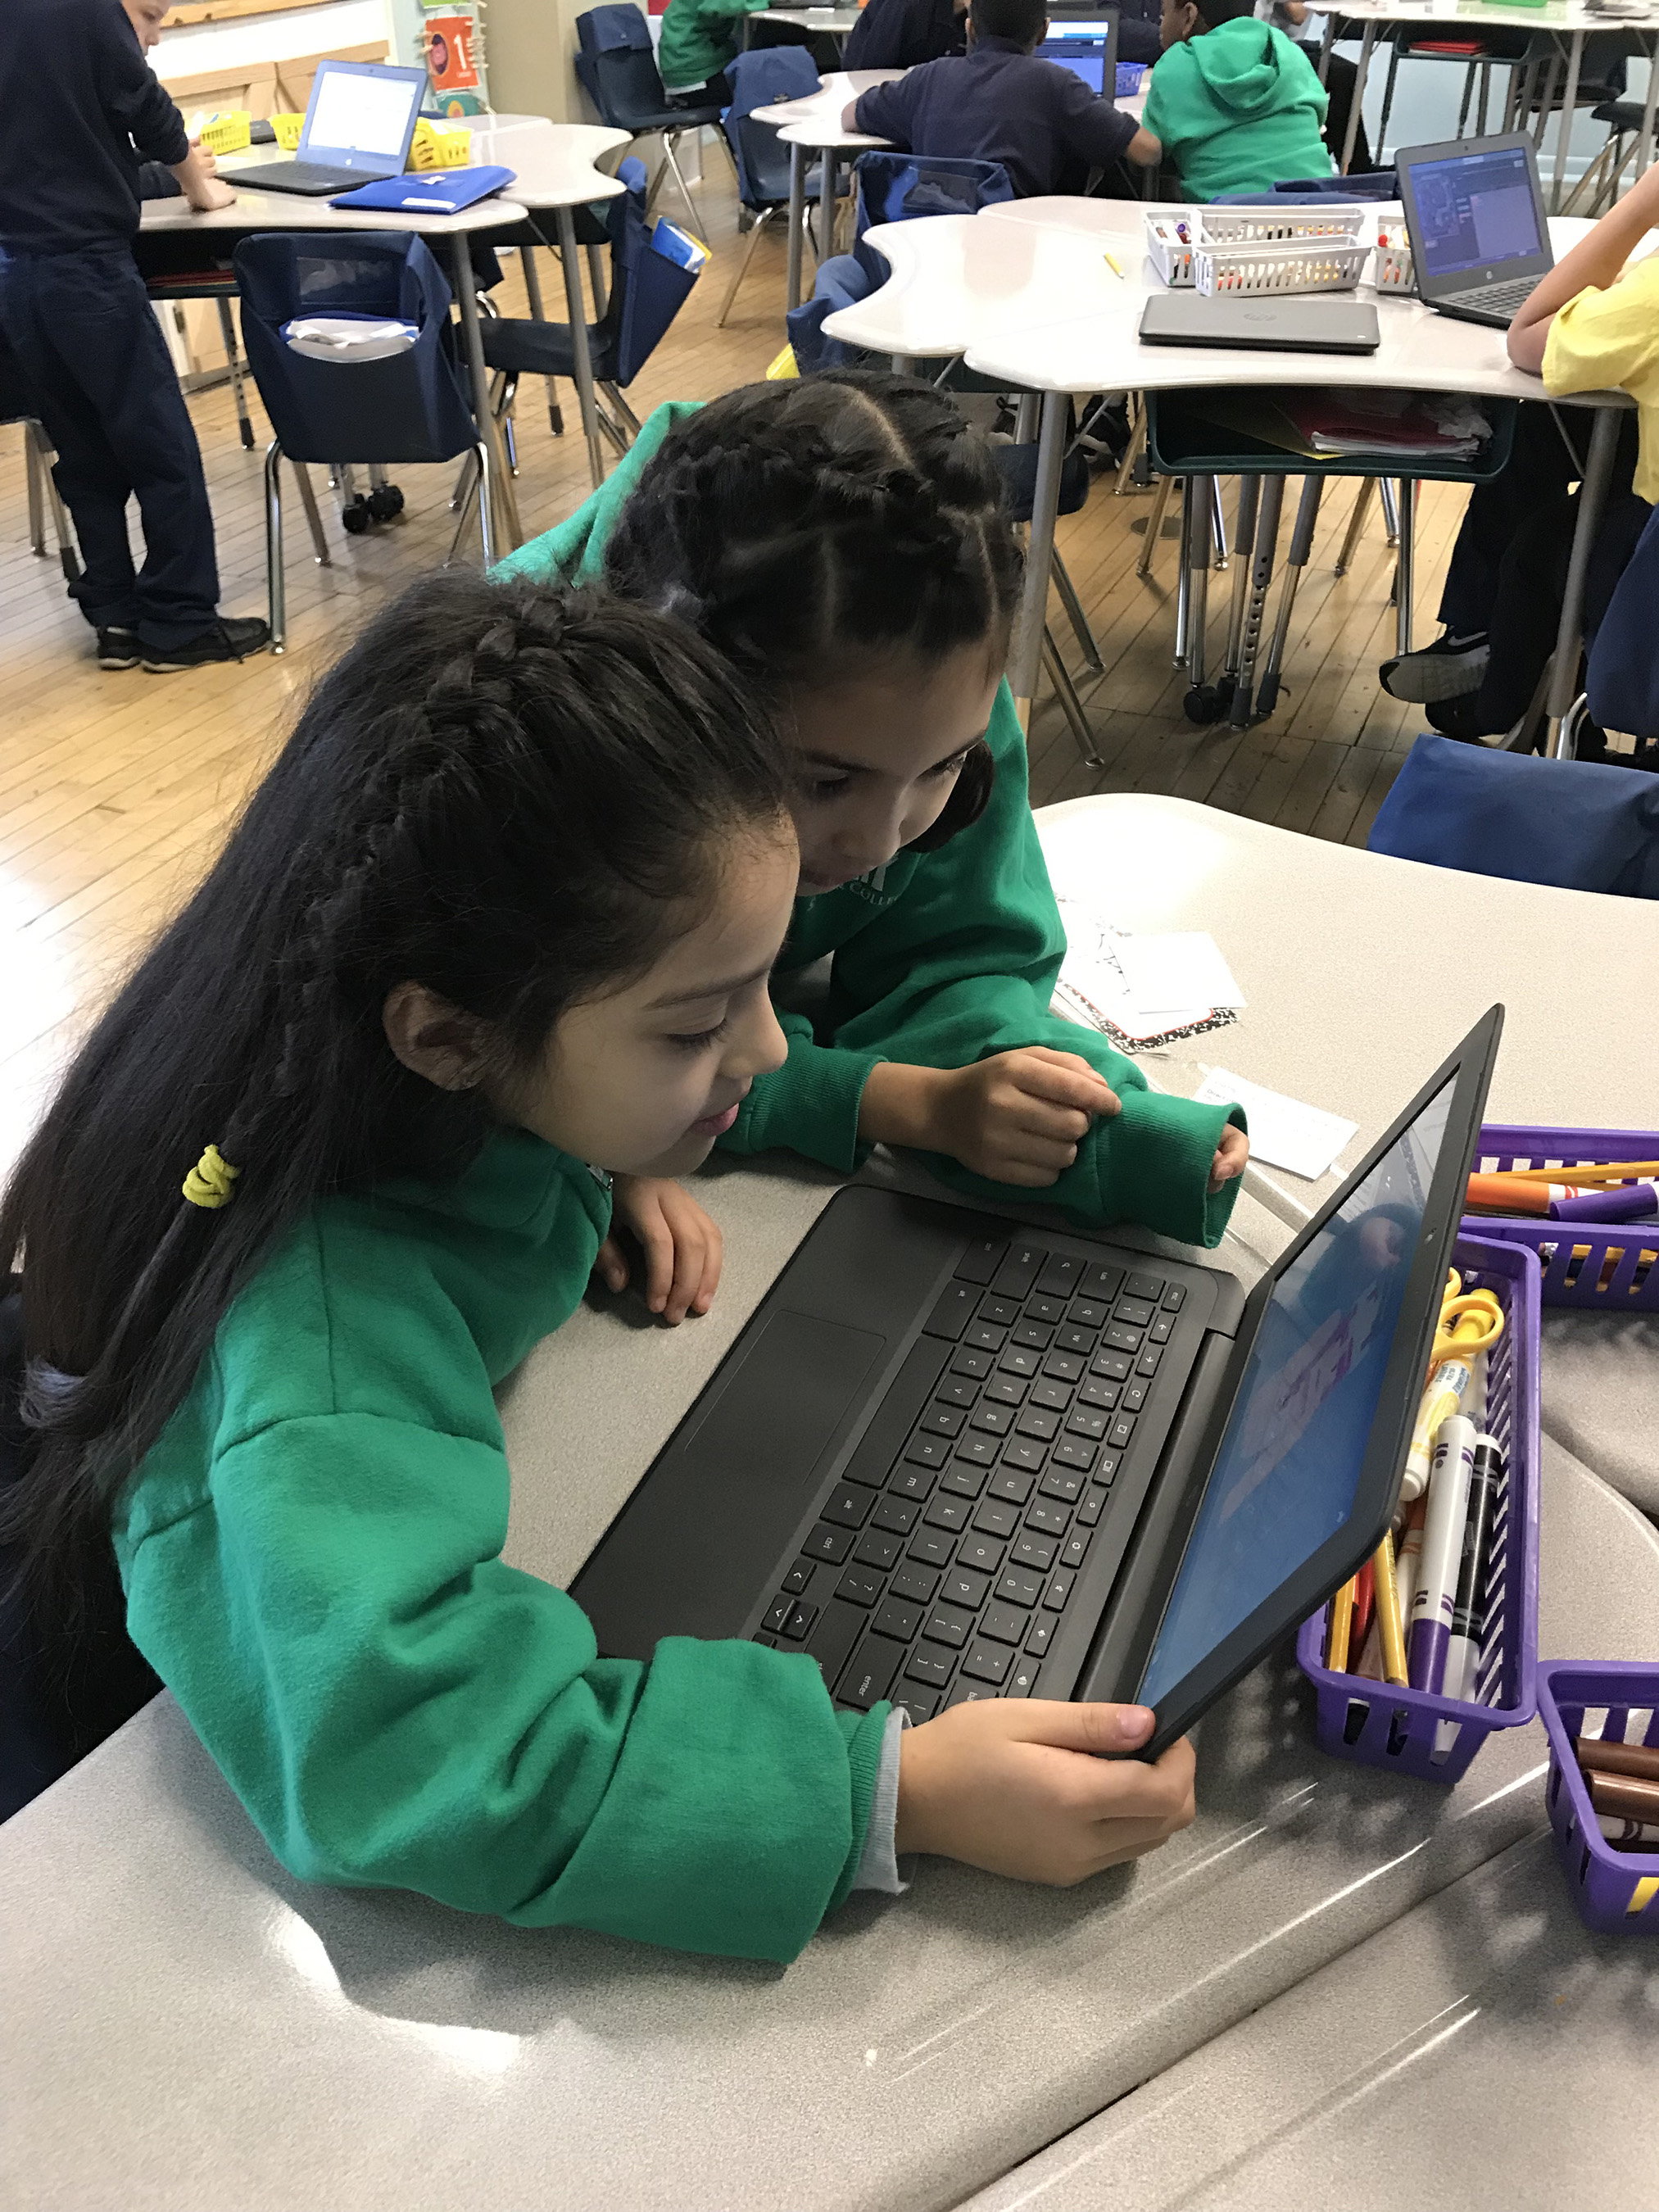 Students from Stellar Collegiate Charter School of Milwaukee worked together to solve challenges in Minecraft during an Hour of Code event led by Northwestern Mutual Senior Engineer Holly Murphy.